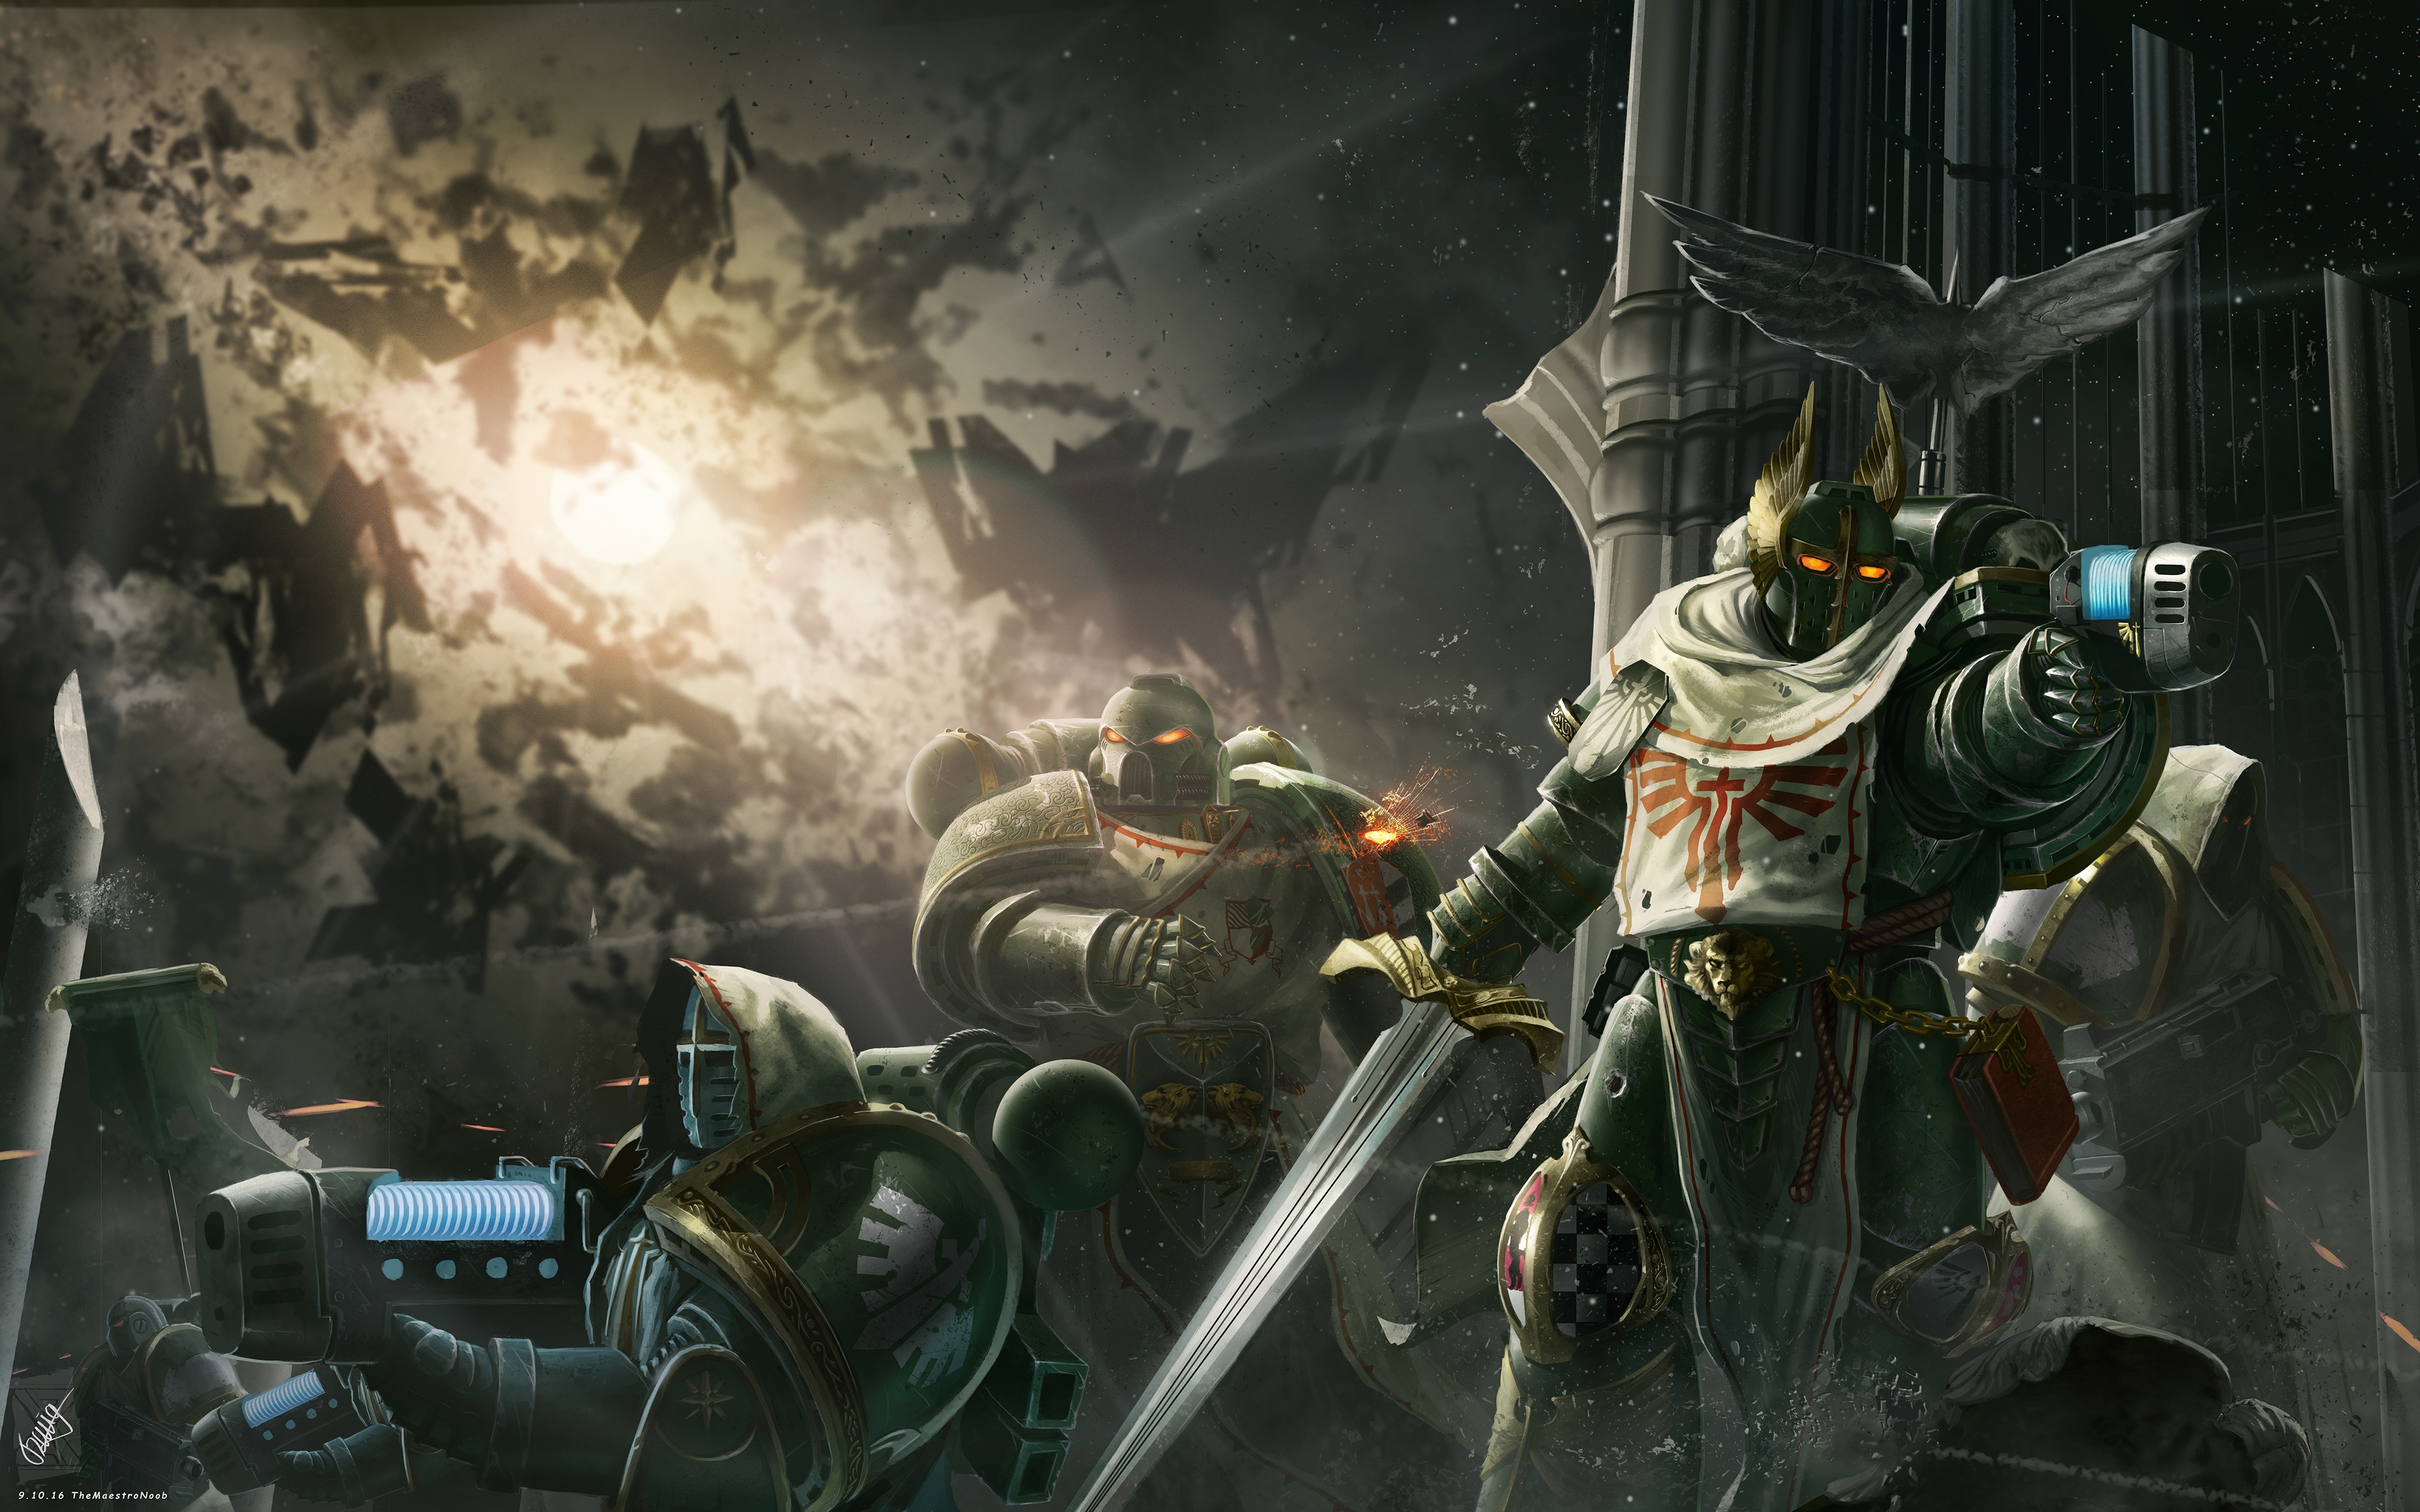 Dark Angels Warhammer 40k 4K wallpaper